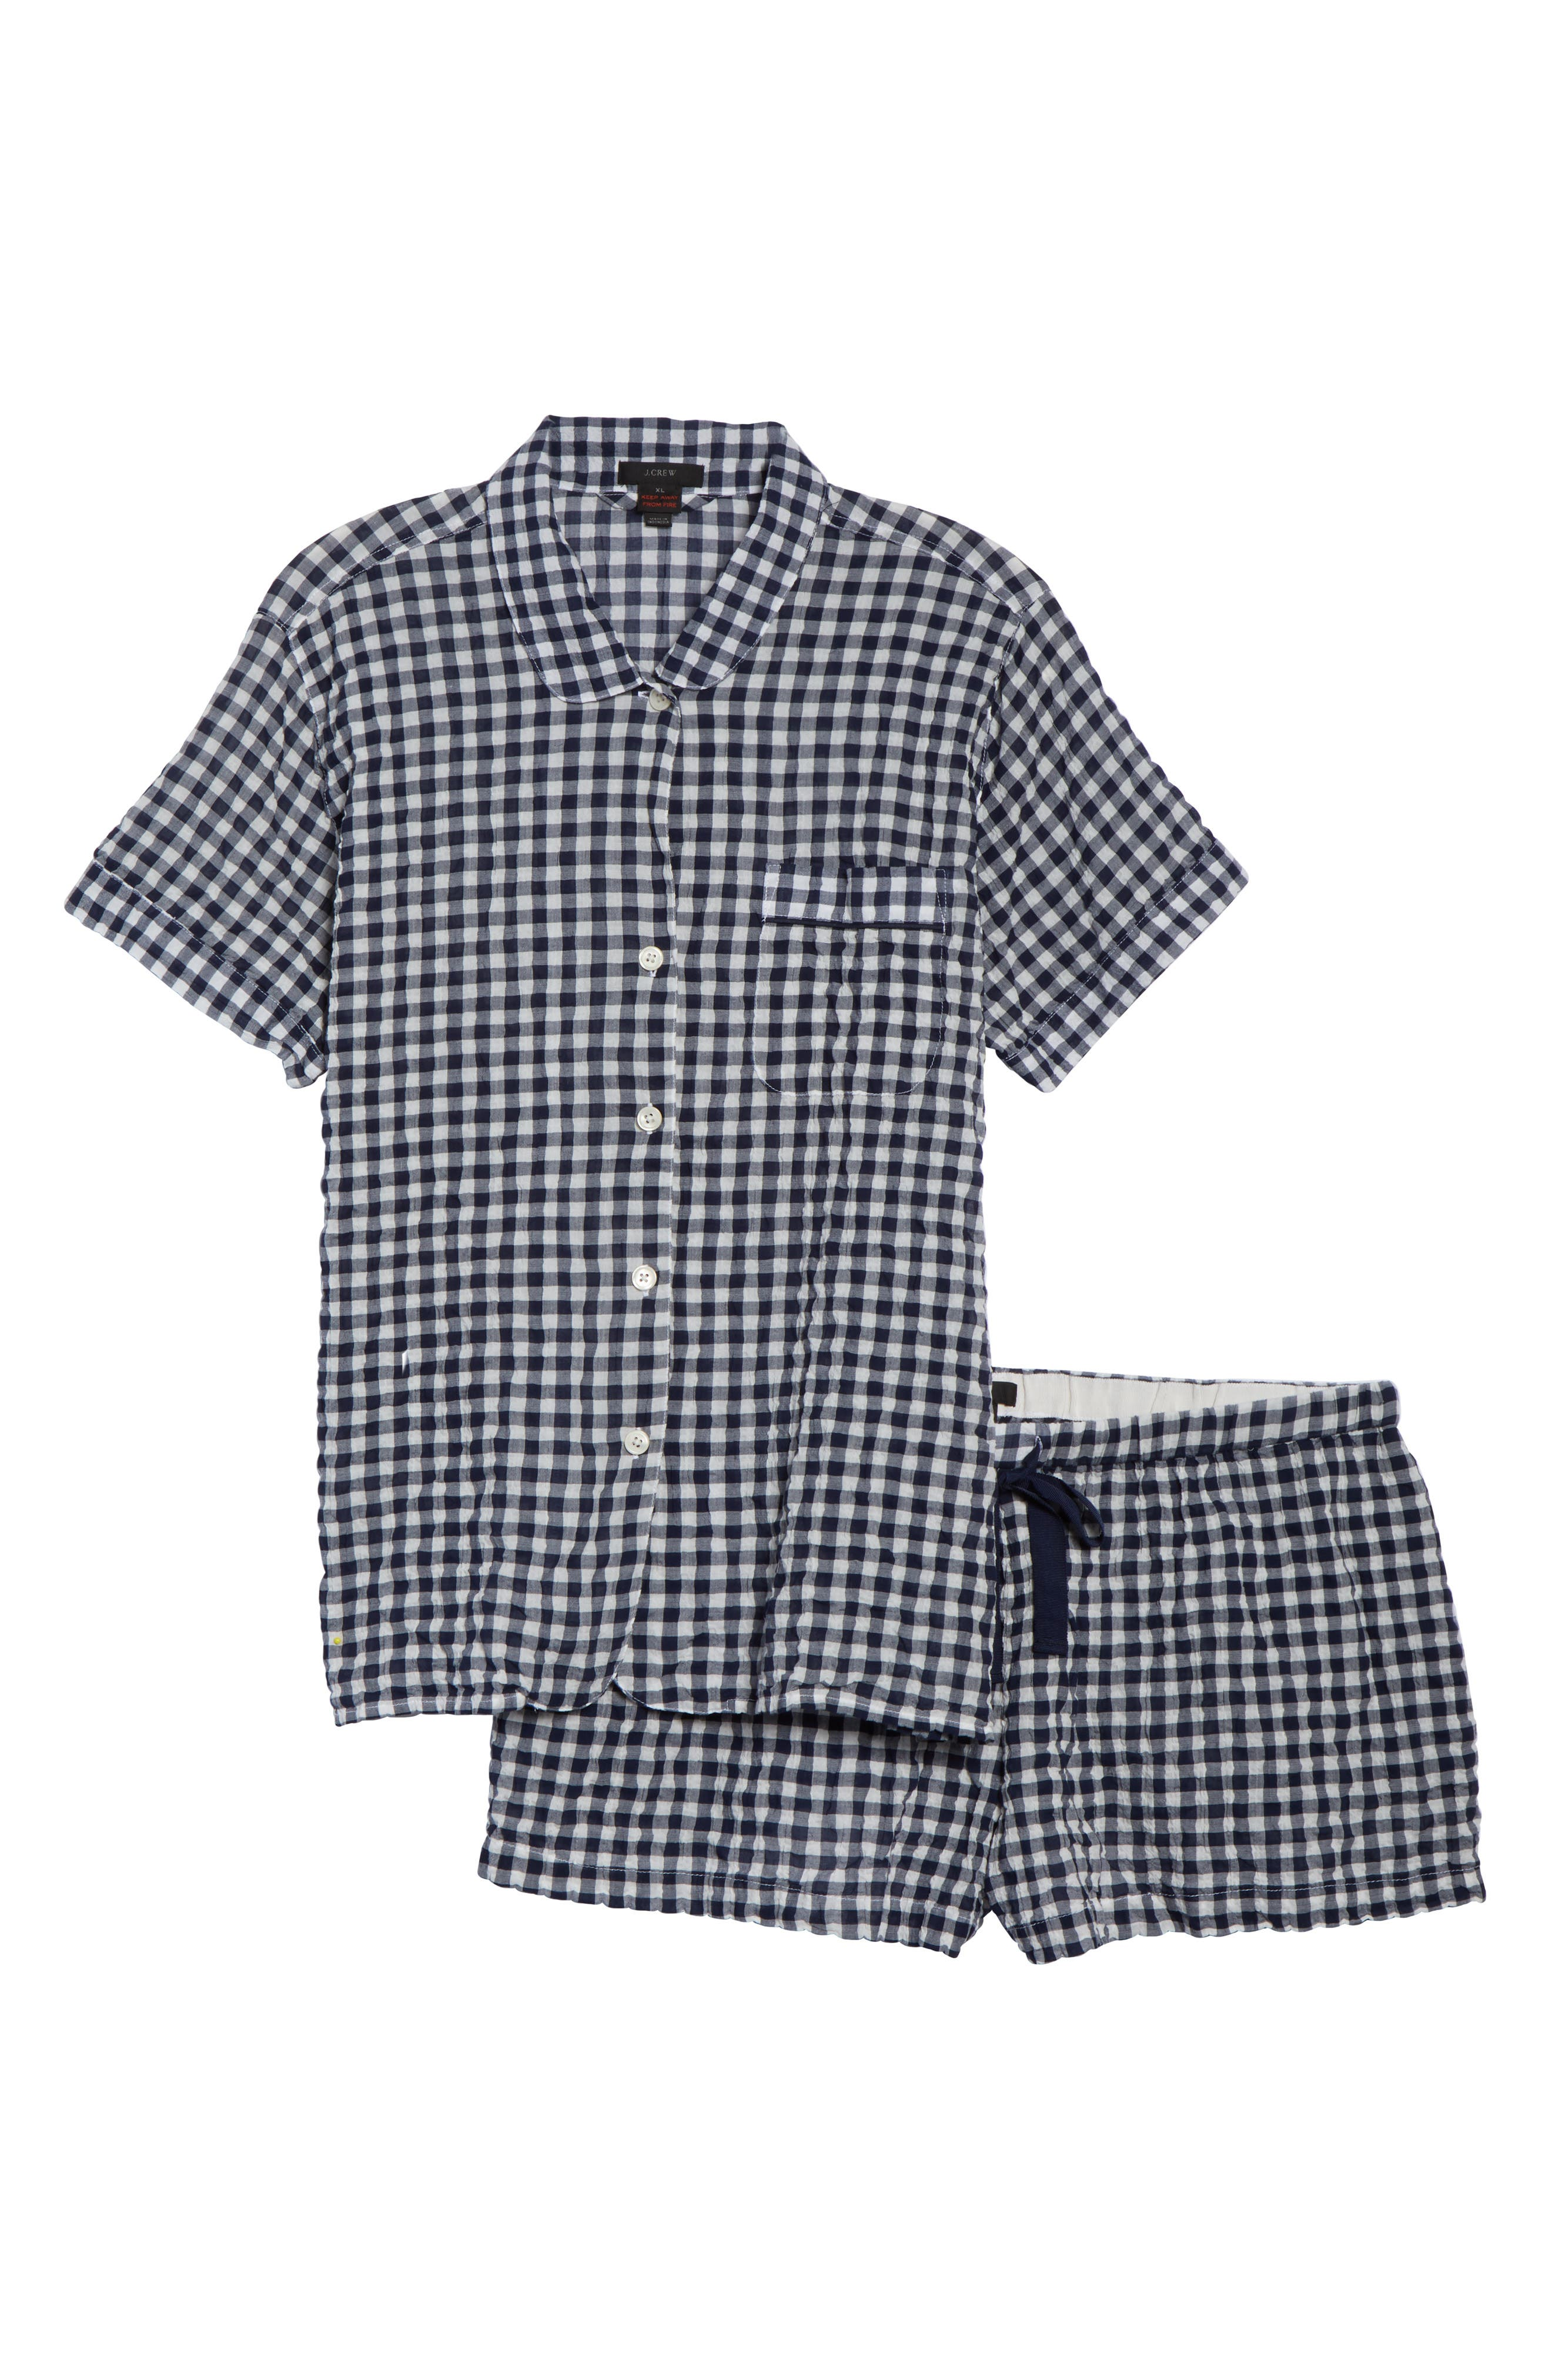 Gingham Pajama Set,                             Alternate thumbnail 12, color,                             IVORY/ NAVY